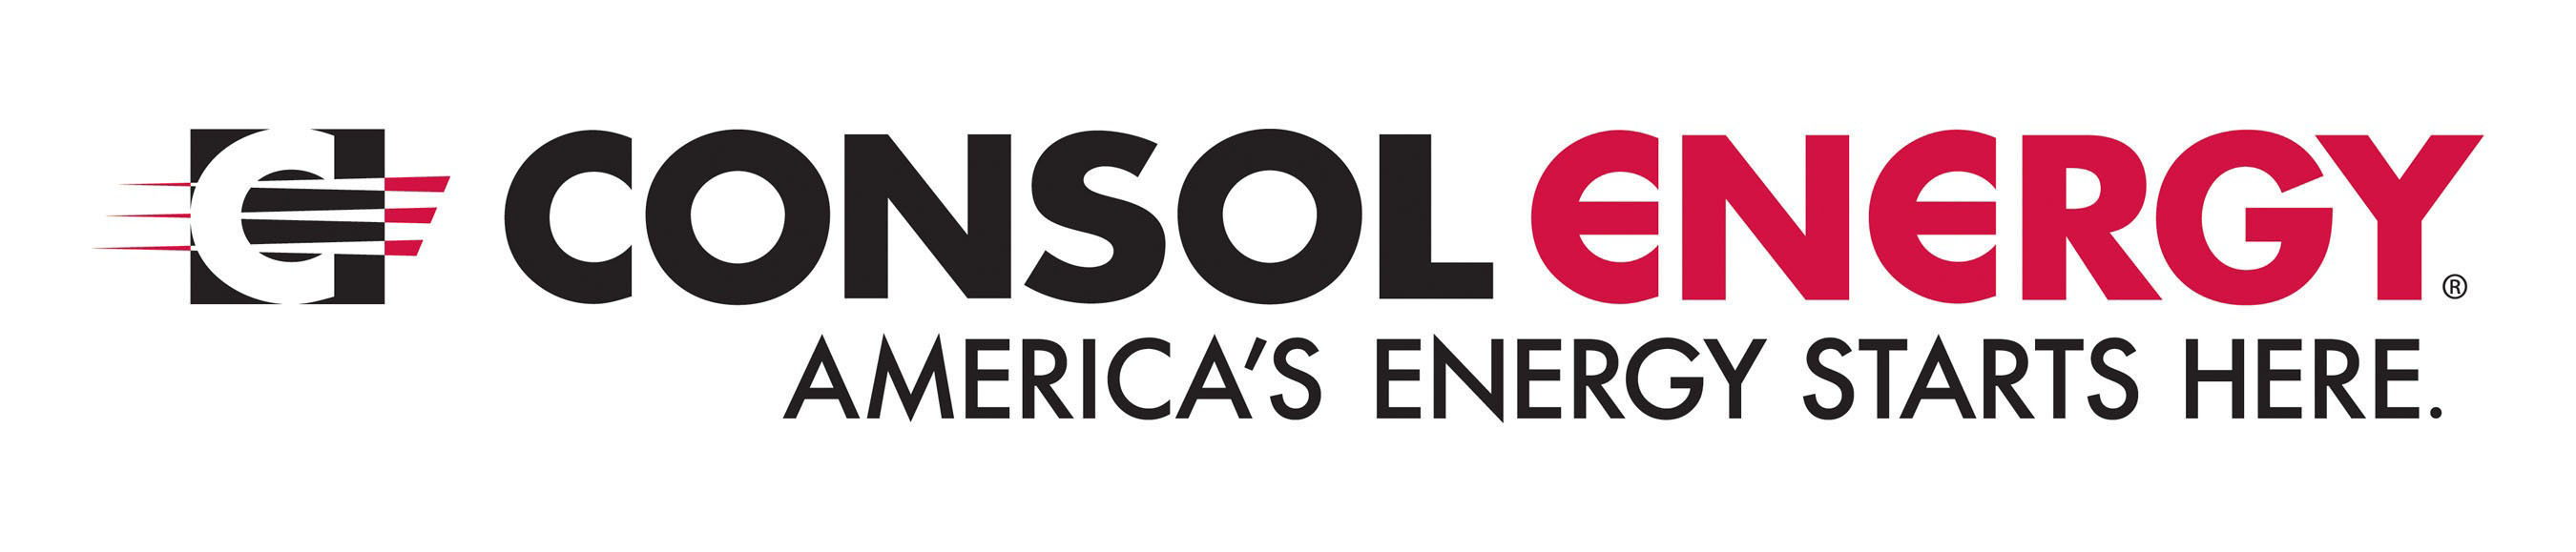 CONSOL Energy Inc. Announces Cash Tender Offers for Any and All of its Outstanding 8.25% Senior